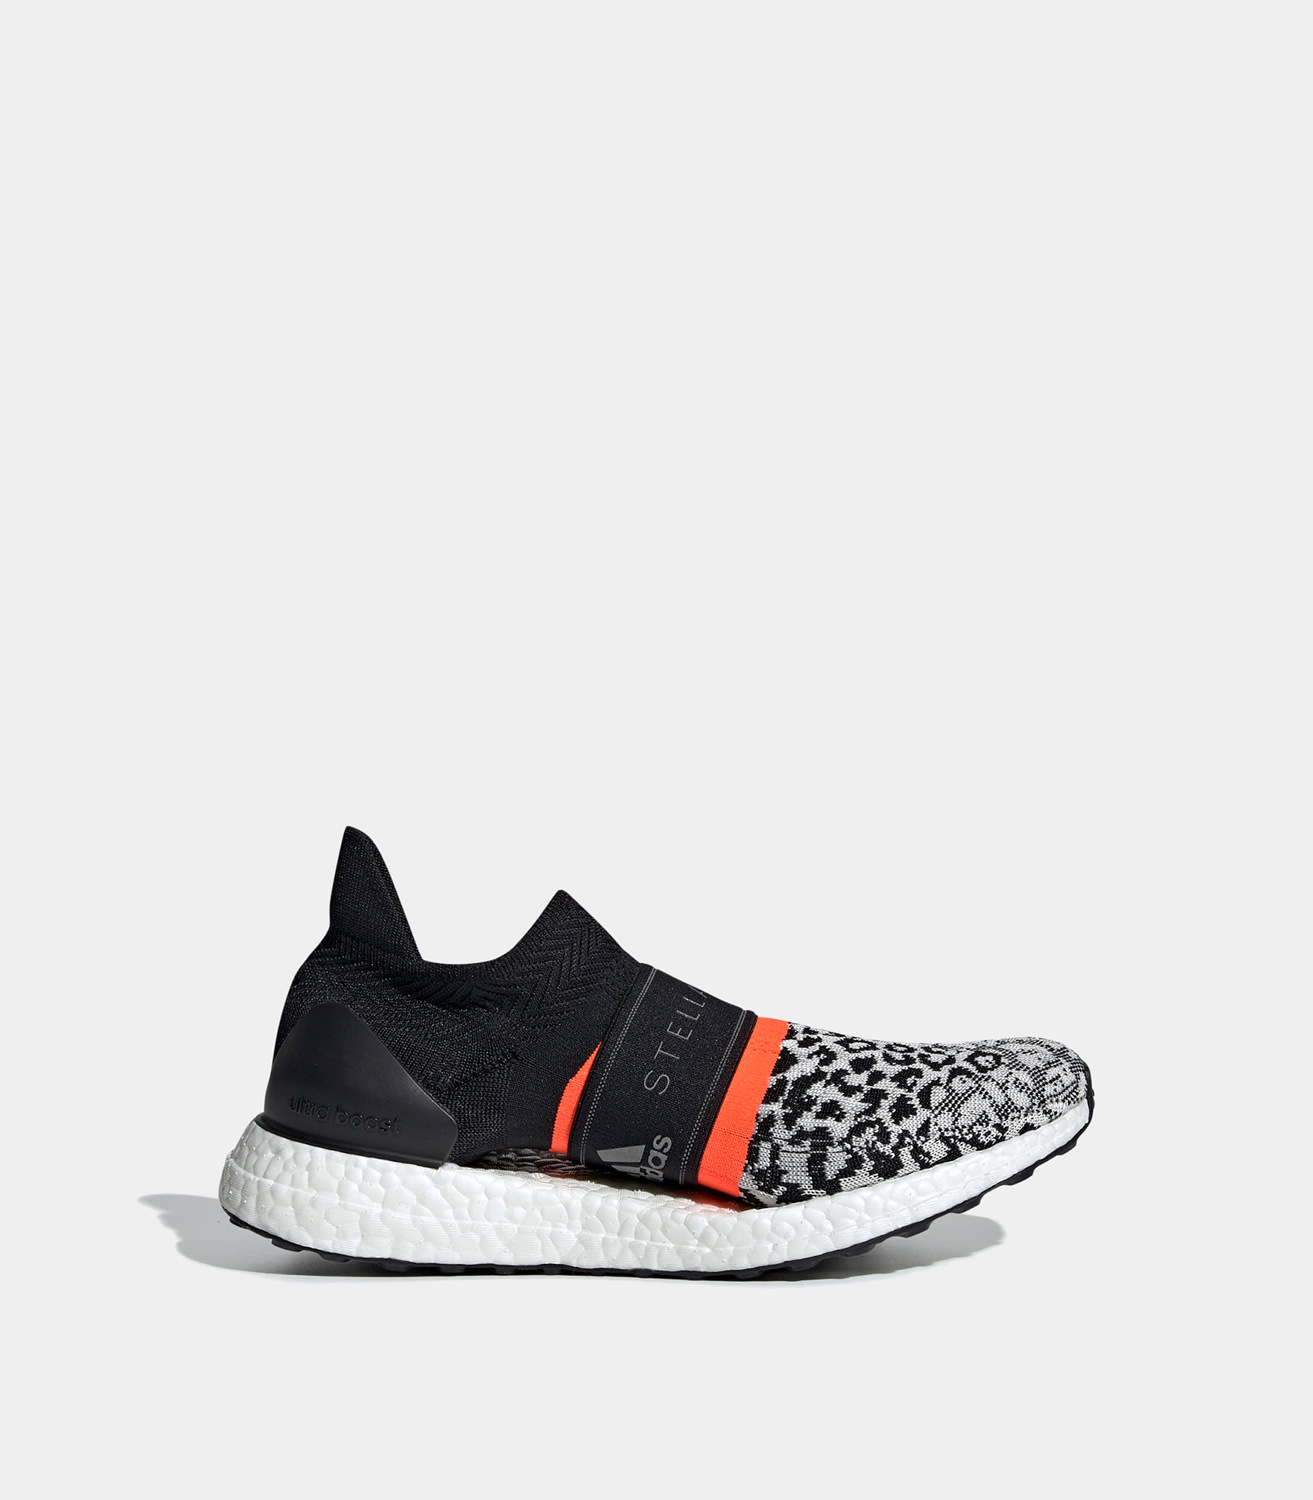 cf2143779ddbc ADIDAS BY STELLA McCARTNEY  ULTRABOOST 3.D.S. SNEAKERS COLOR WHITE BLACK